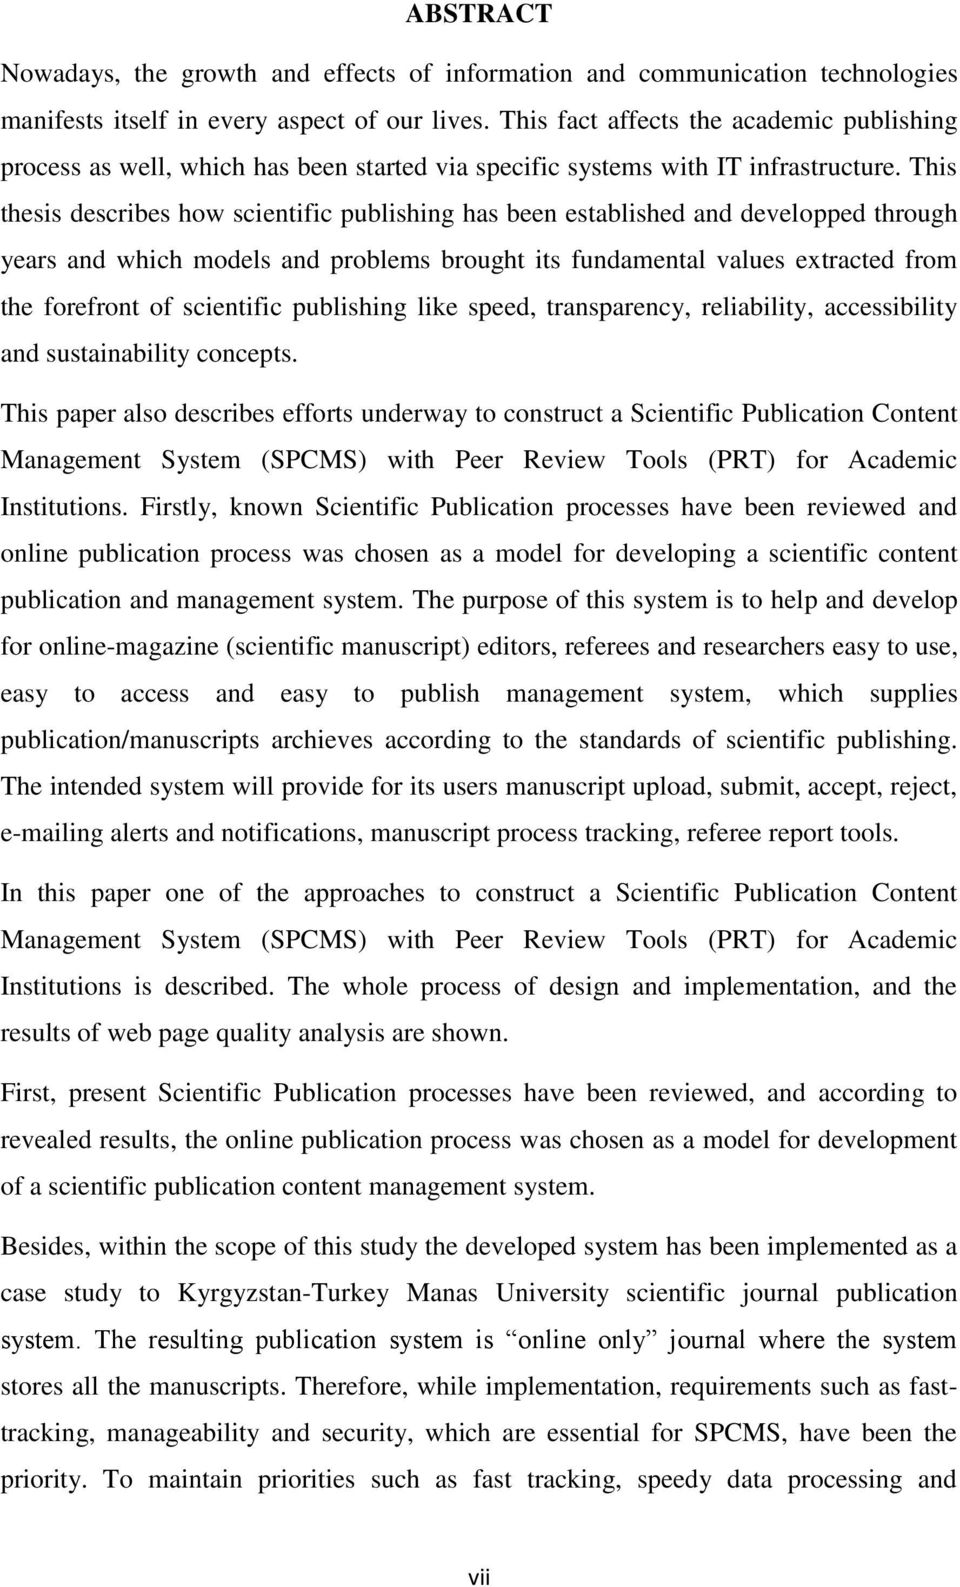 This thesis describes how scientific publishing has been established and developped through years and which models and problems brought its fundamental values extracted from the forefront of